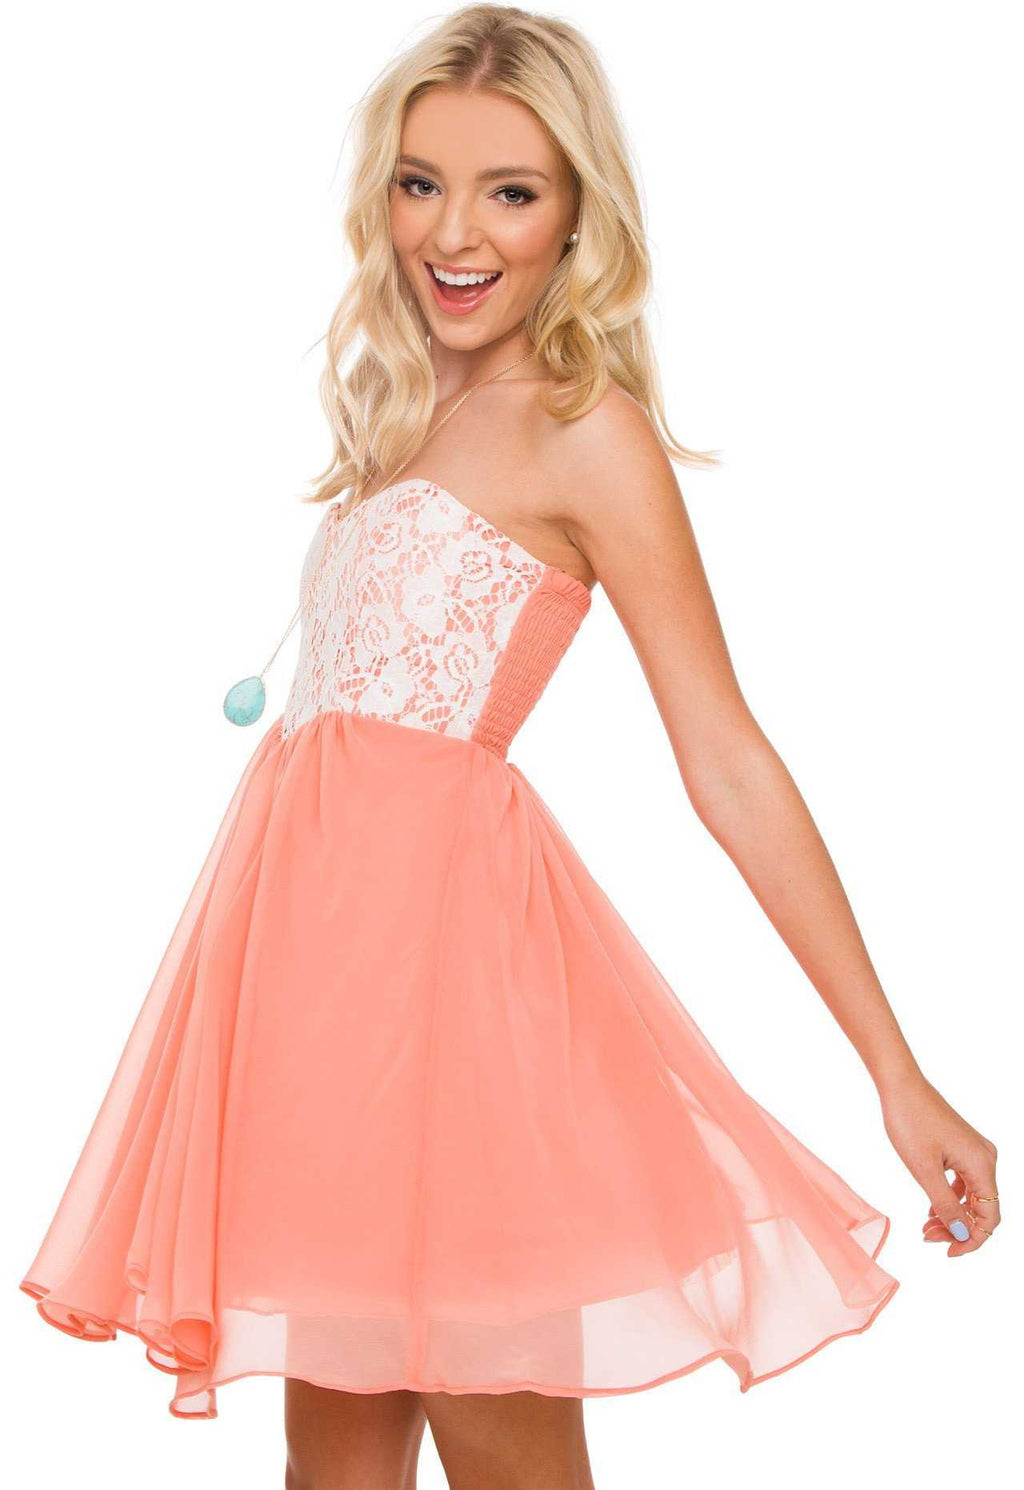 Dresses - Paris Dress In Peach